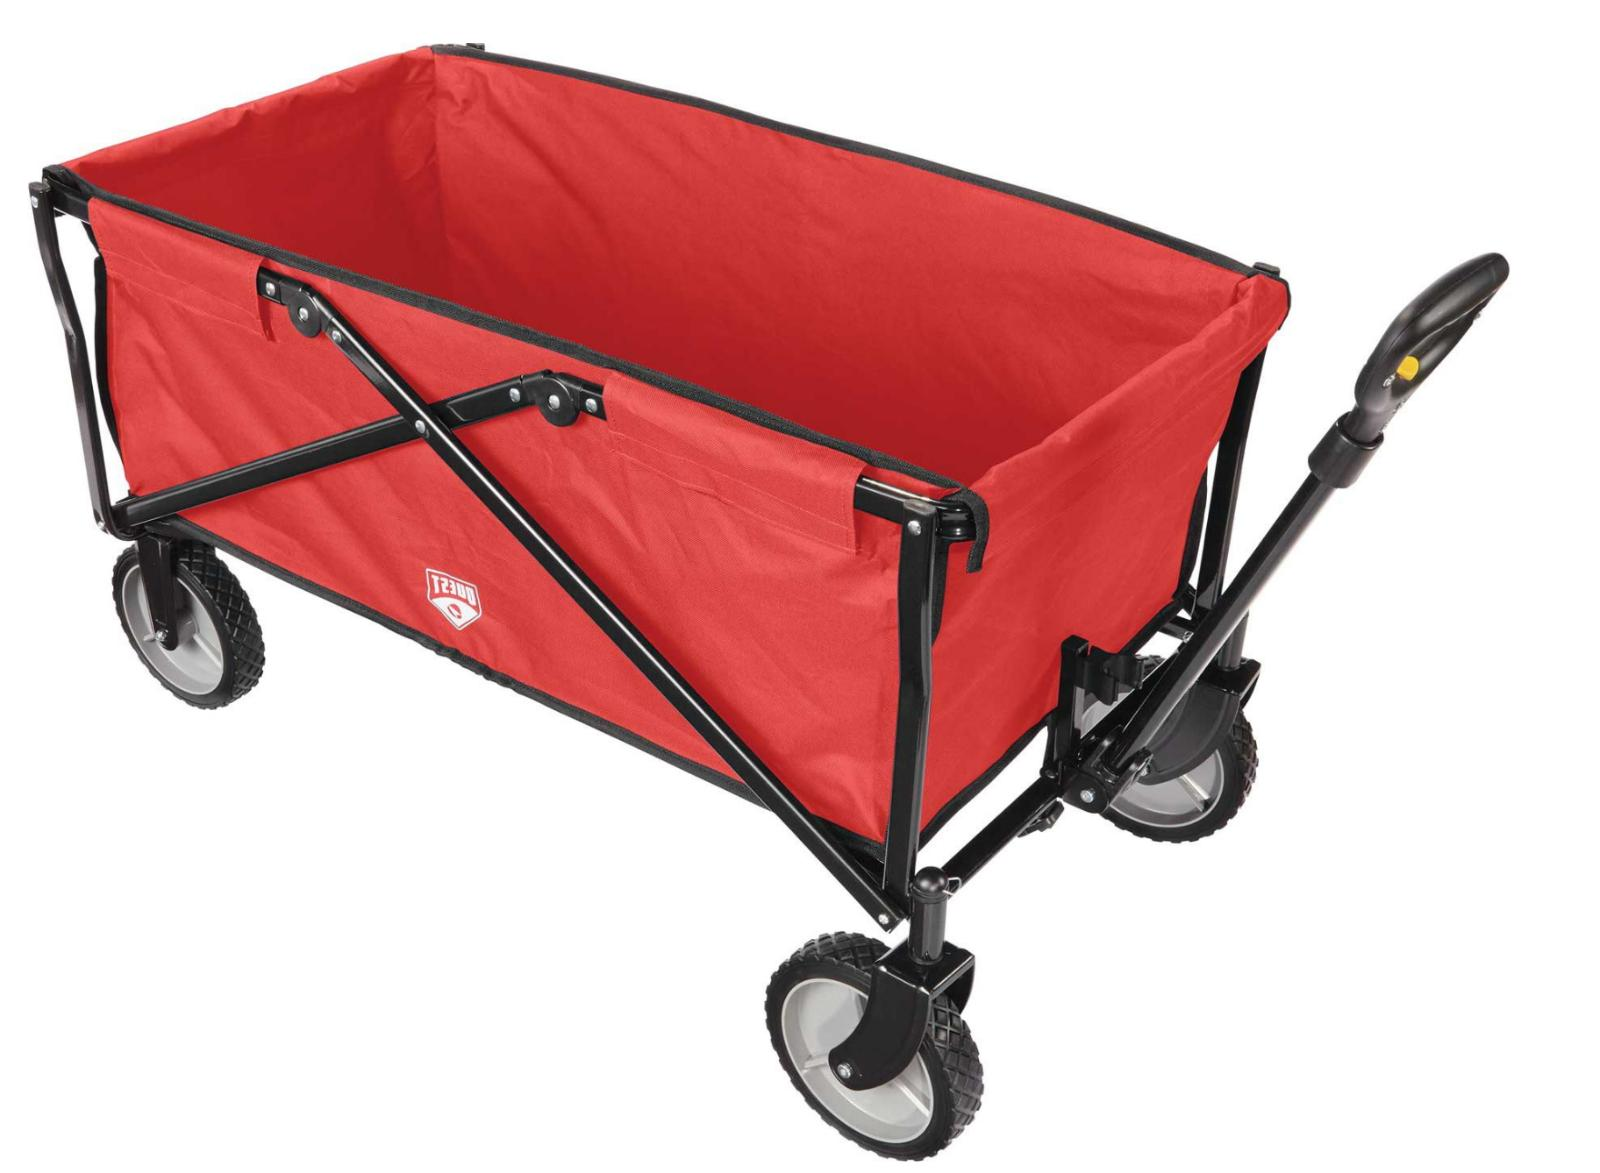 Quest Flat Foldable Utility Wagon for Camping